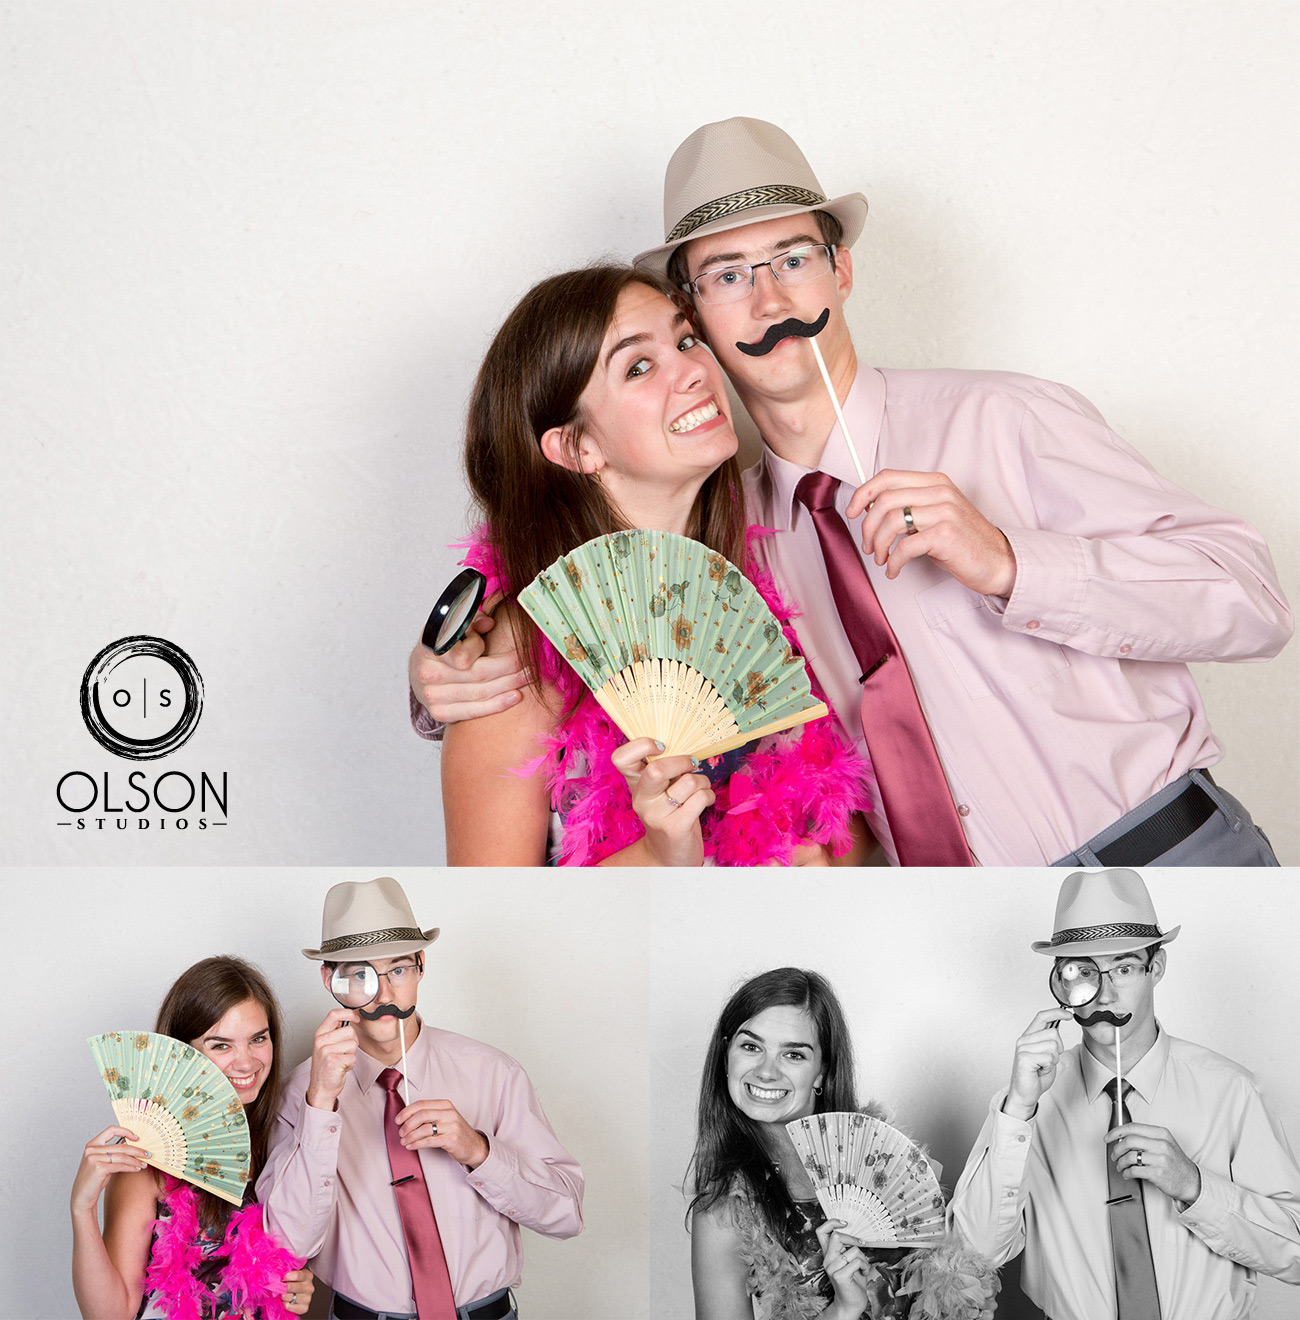 Matthew-and-Victoria-Photo-Booth-(13)